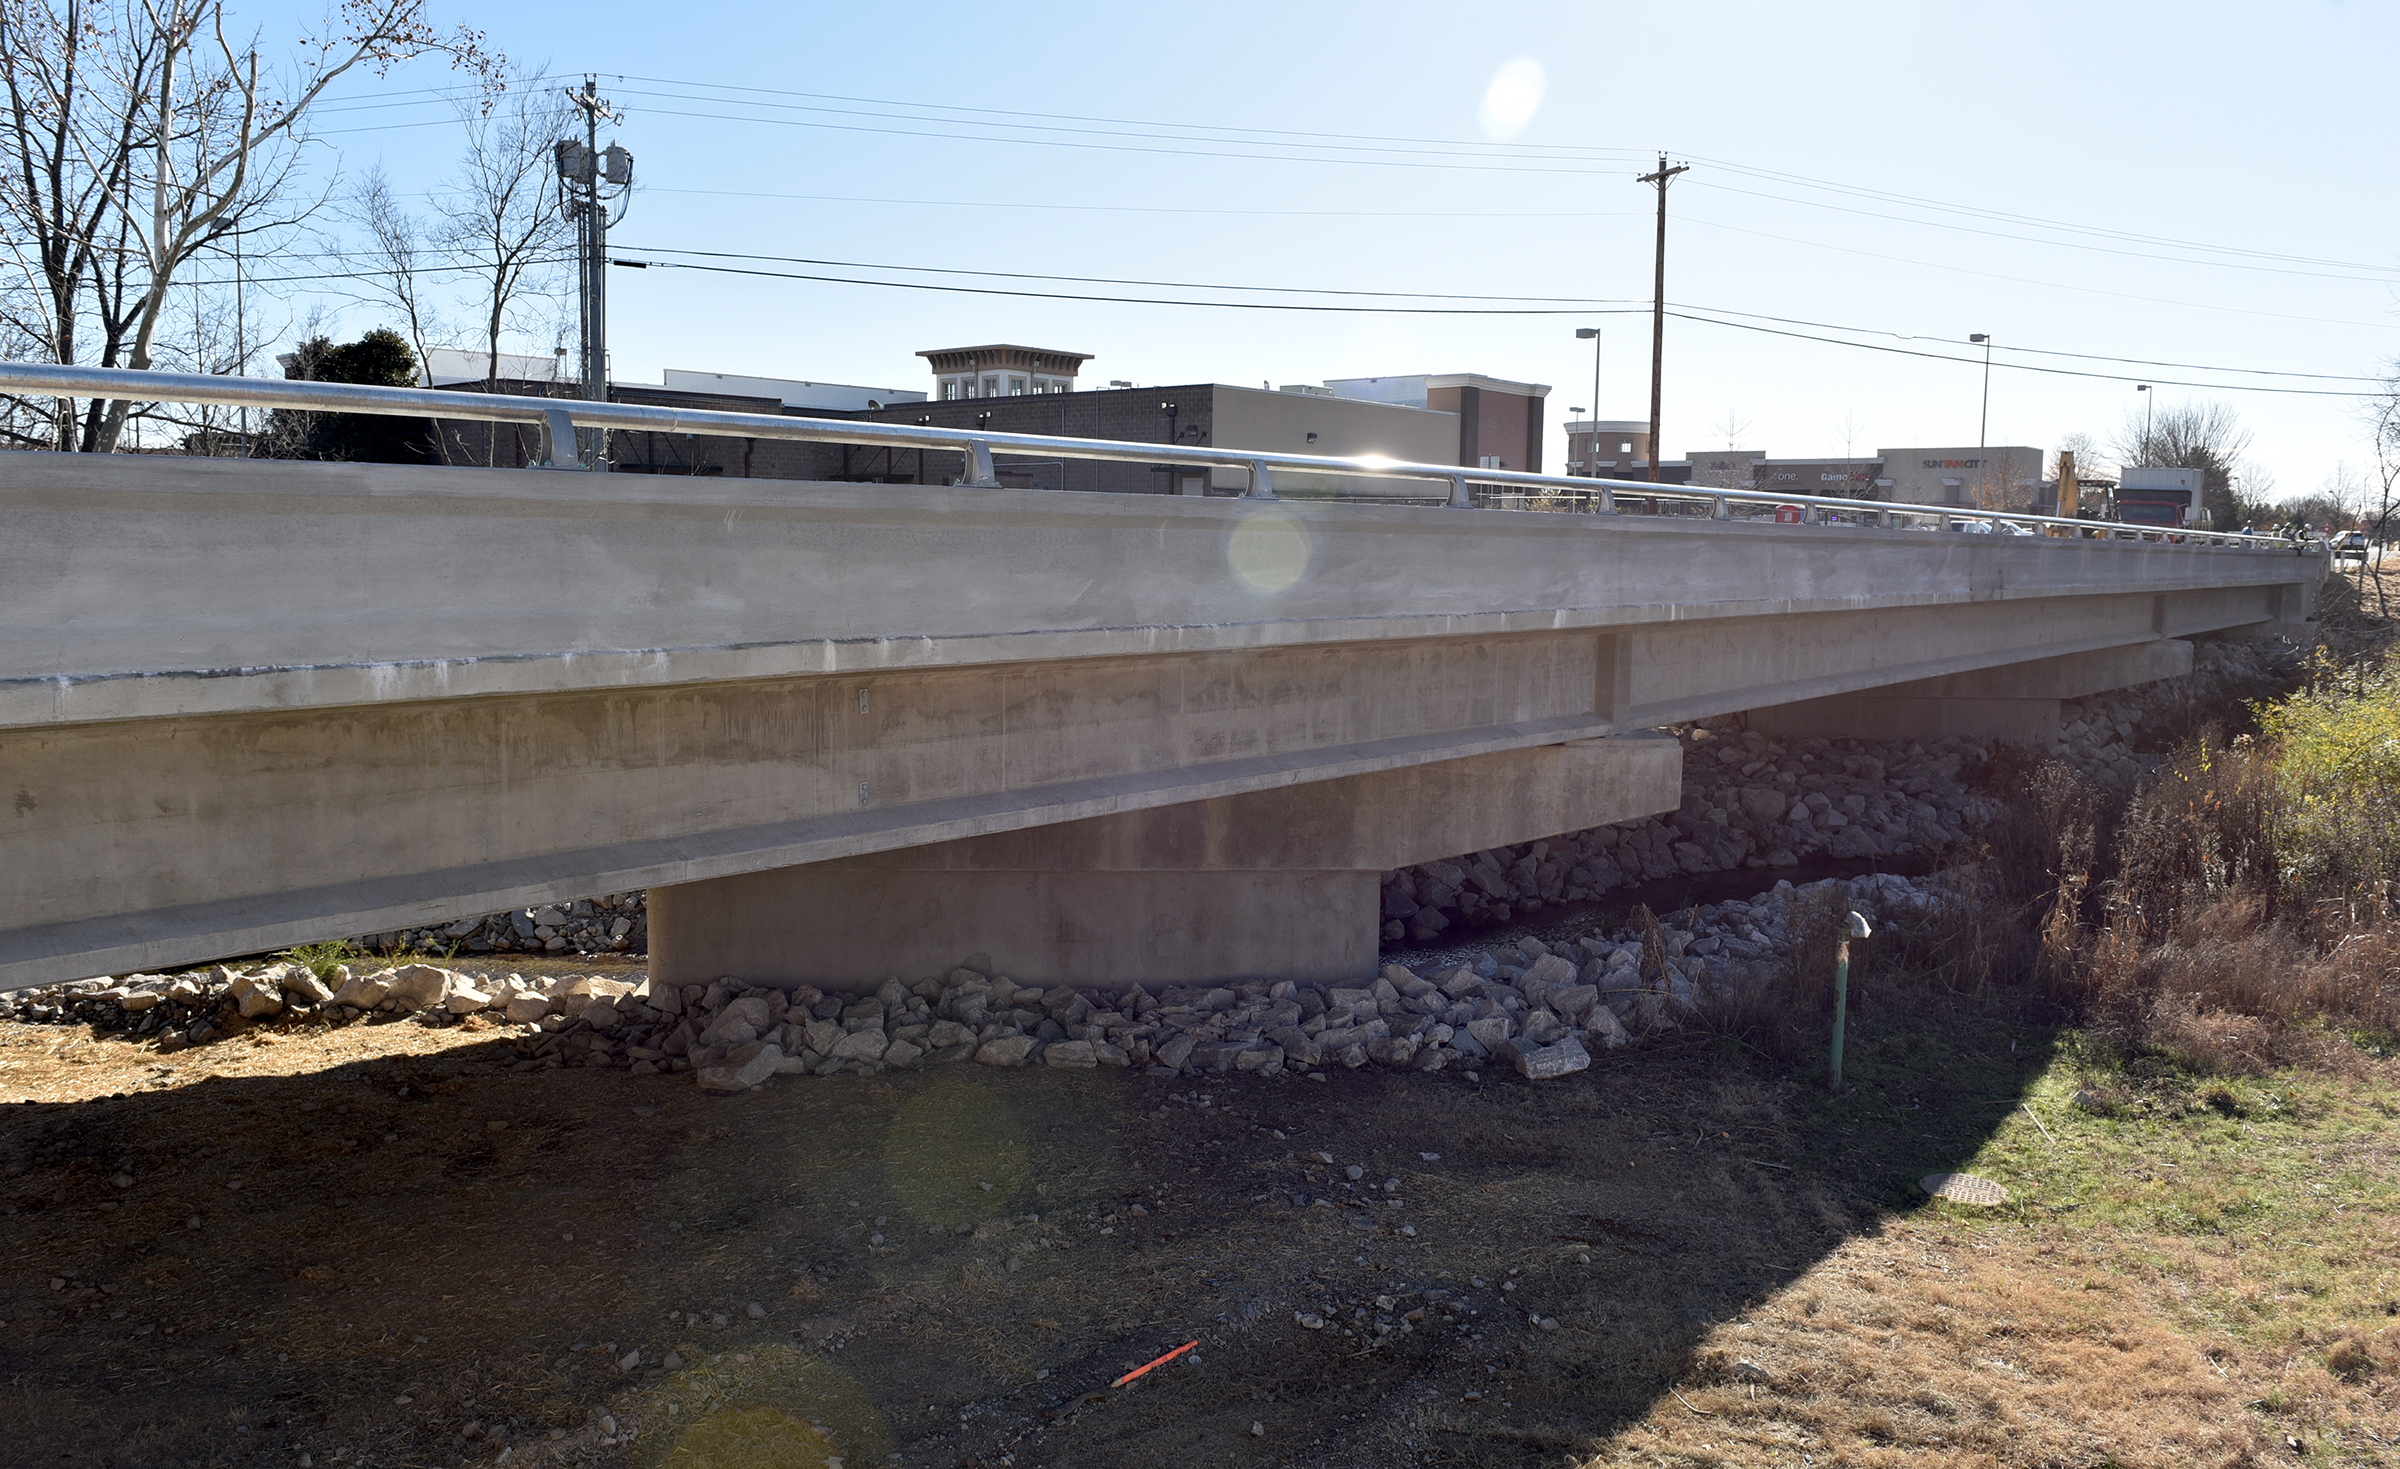 Crossings Circle North Bridge opens December 6, 2019